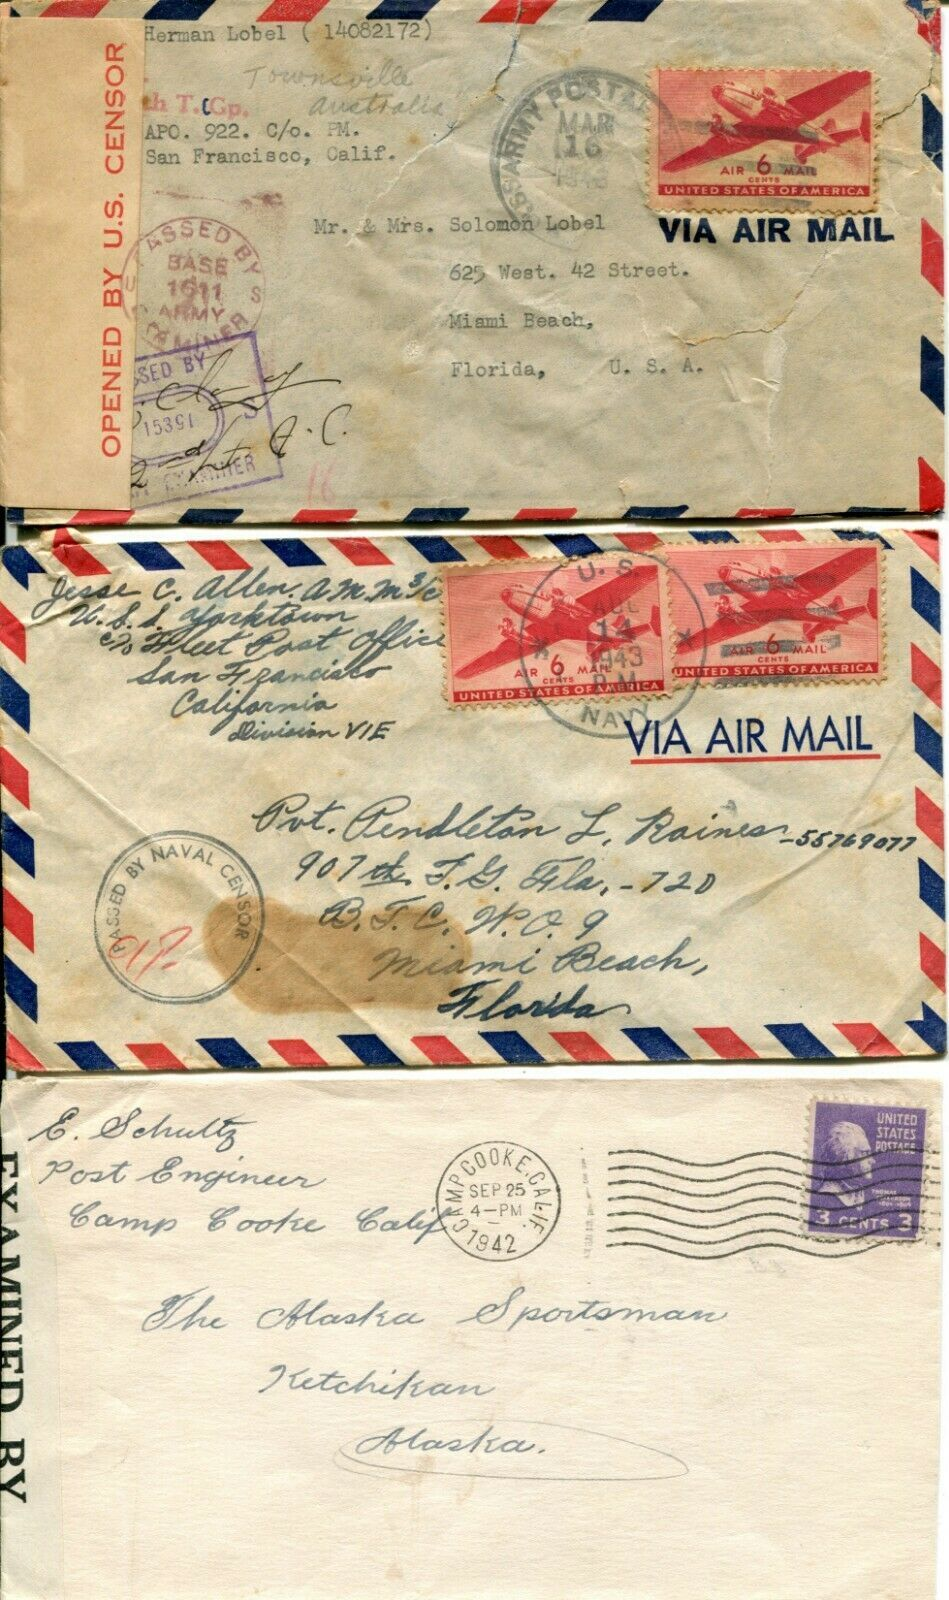 US Army Airmail WWII APO Navy Military Cover Examined Postage Collection  image 7